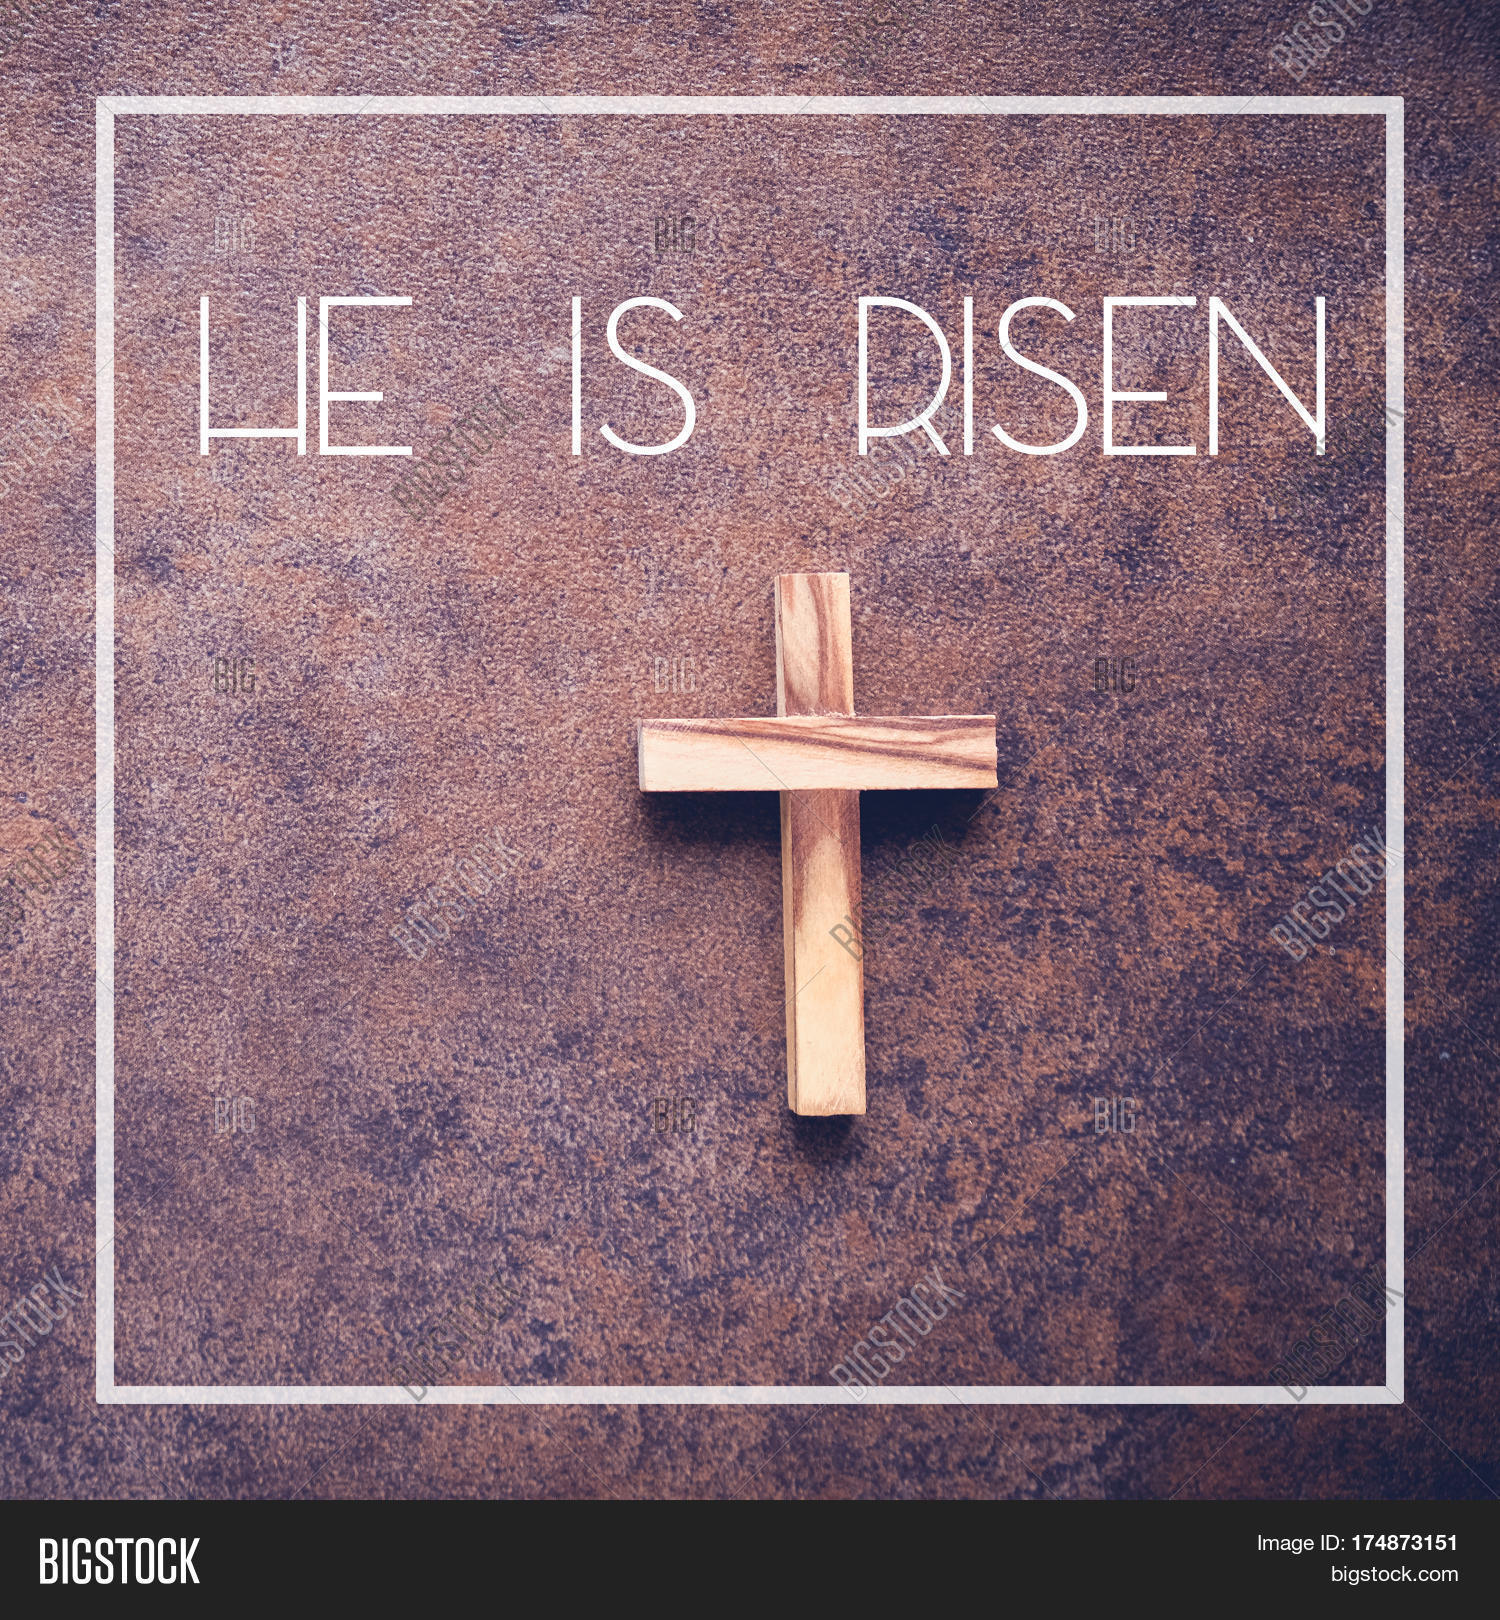 He risen word wooden cross on dark image photo bigstock he is risen word and wooden cross on dark background buycottarizona Choice Image